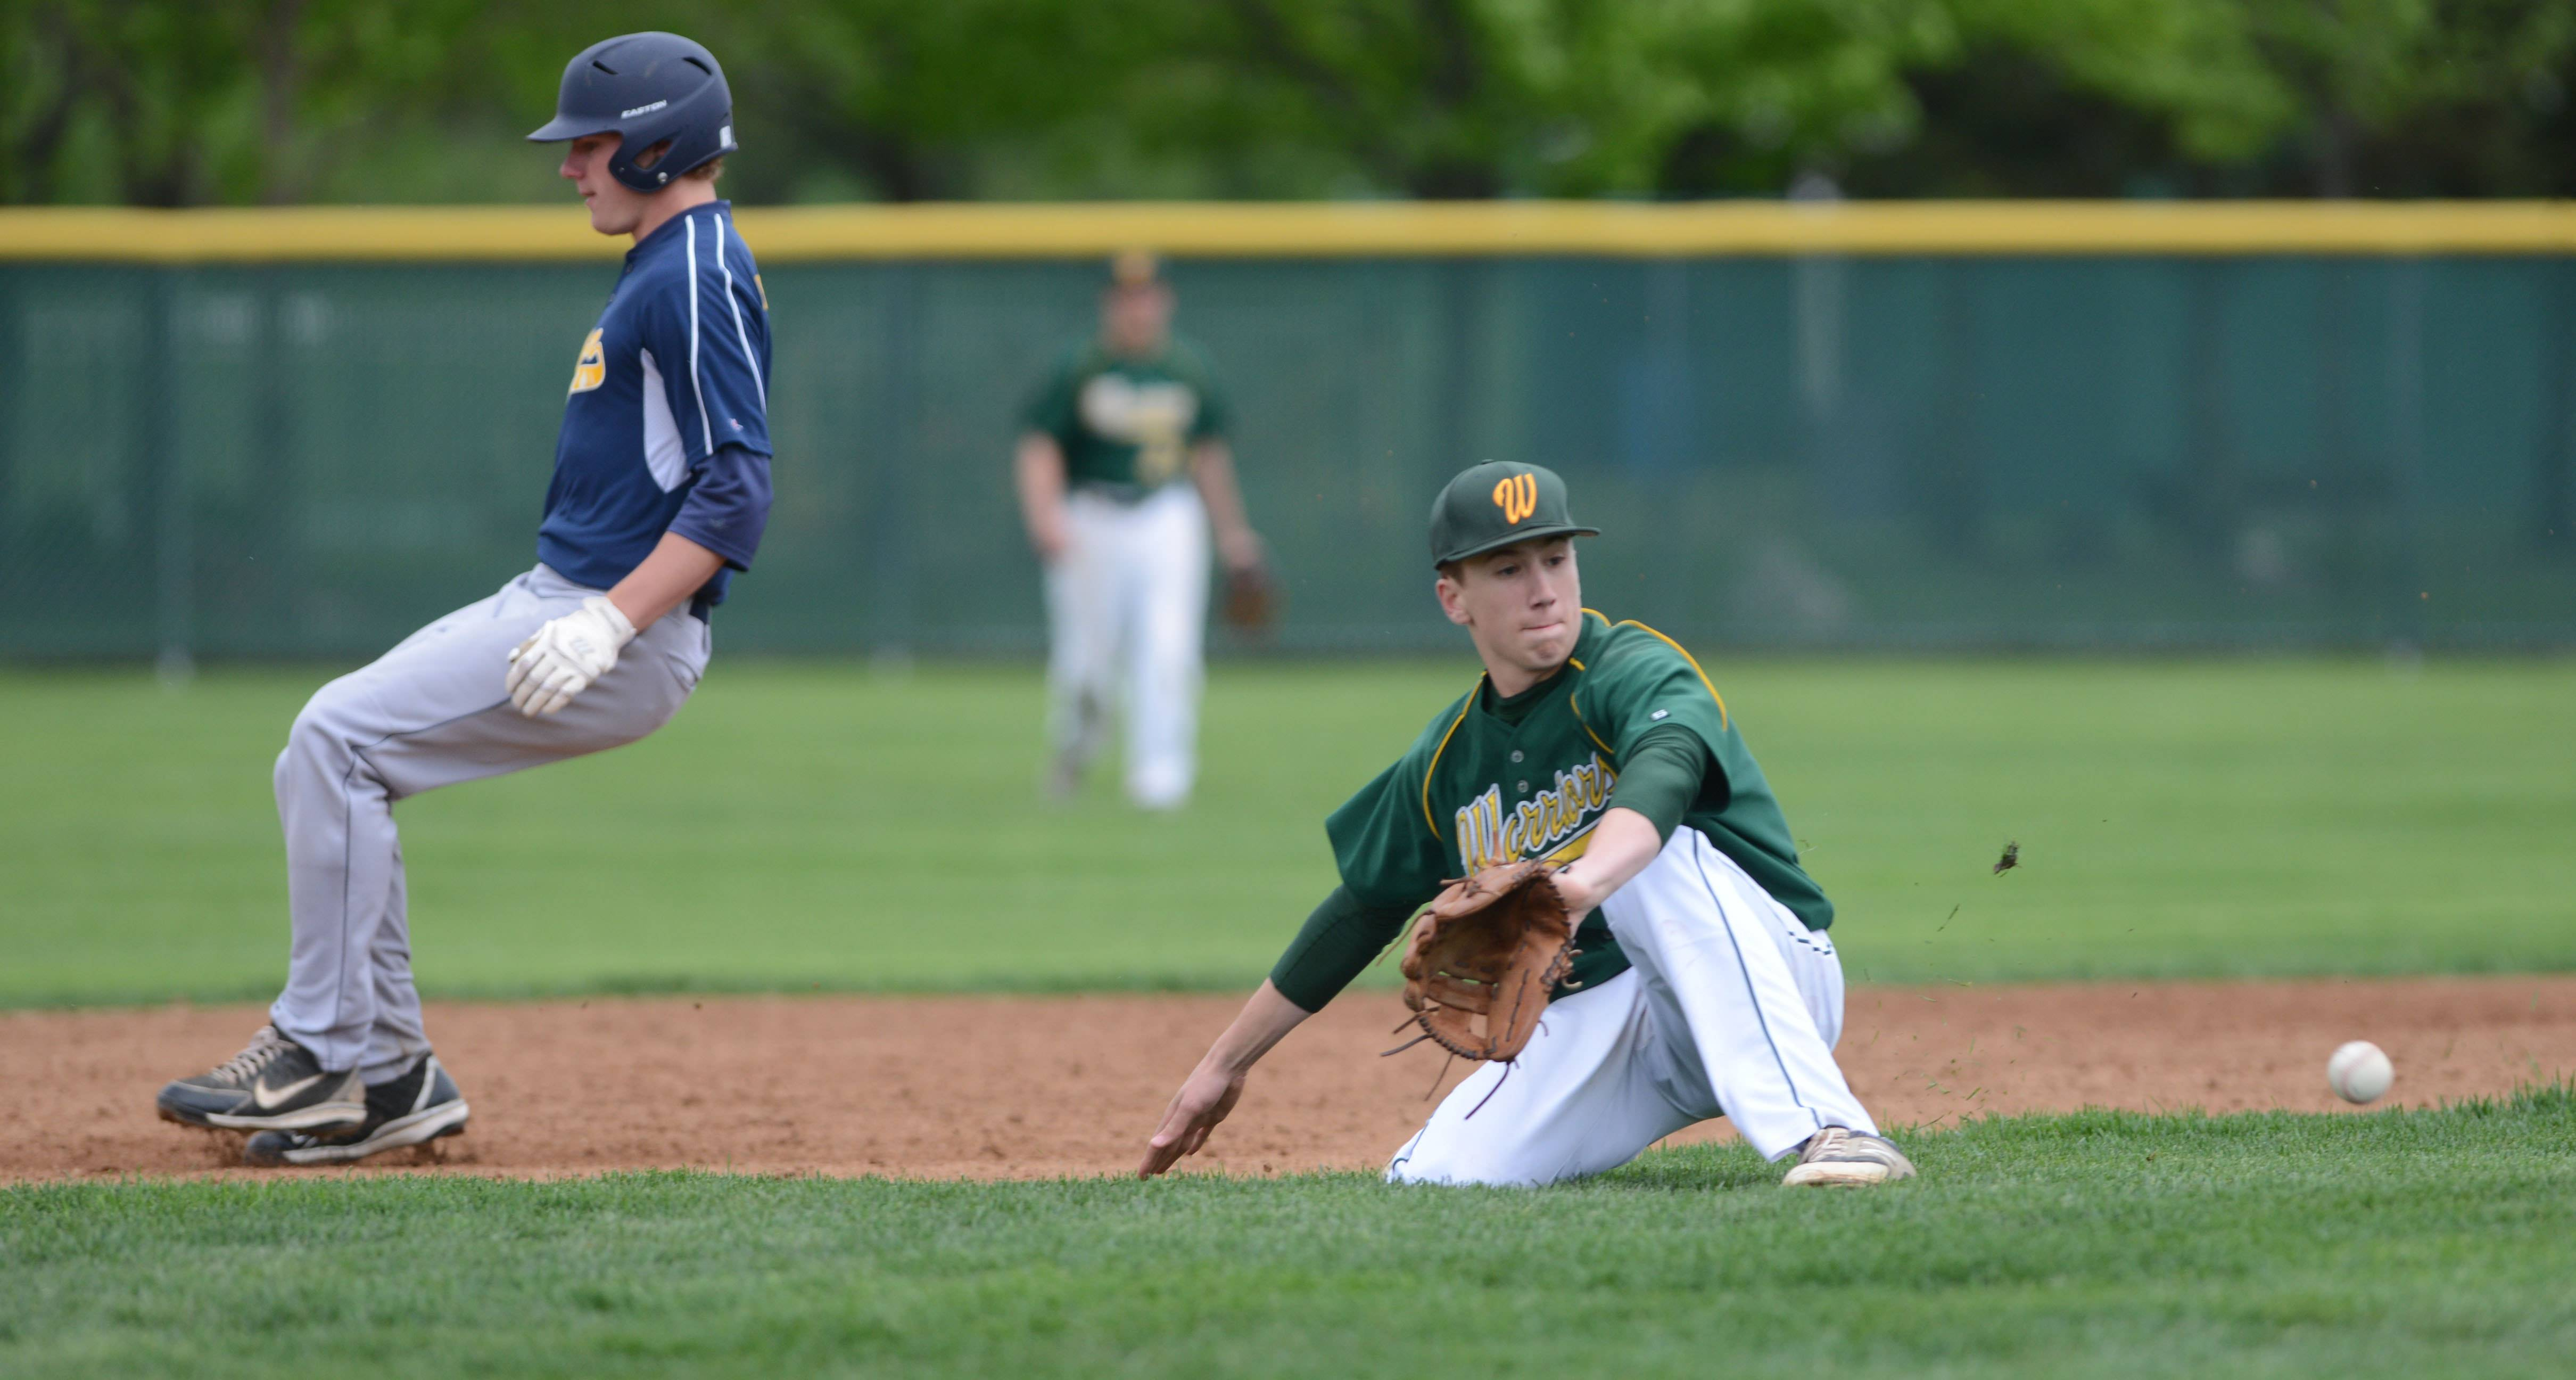 #23 Tyler Tesmond of Neuqua Valley is safe at second while Garrett Howicz of Waubonsie fields the ball during the Neuqua Valley at Waubonsie Valley baseball game Tuesday.